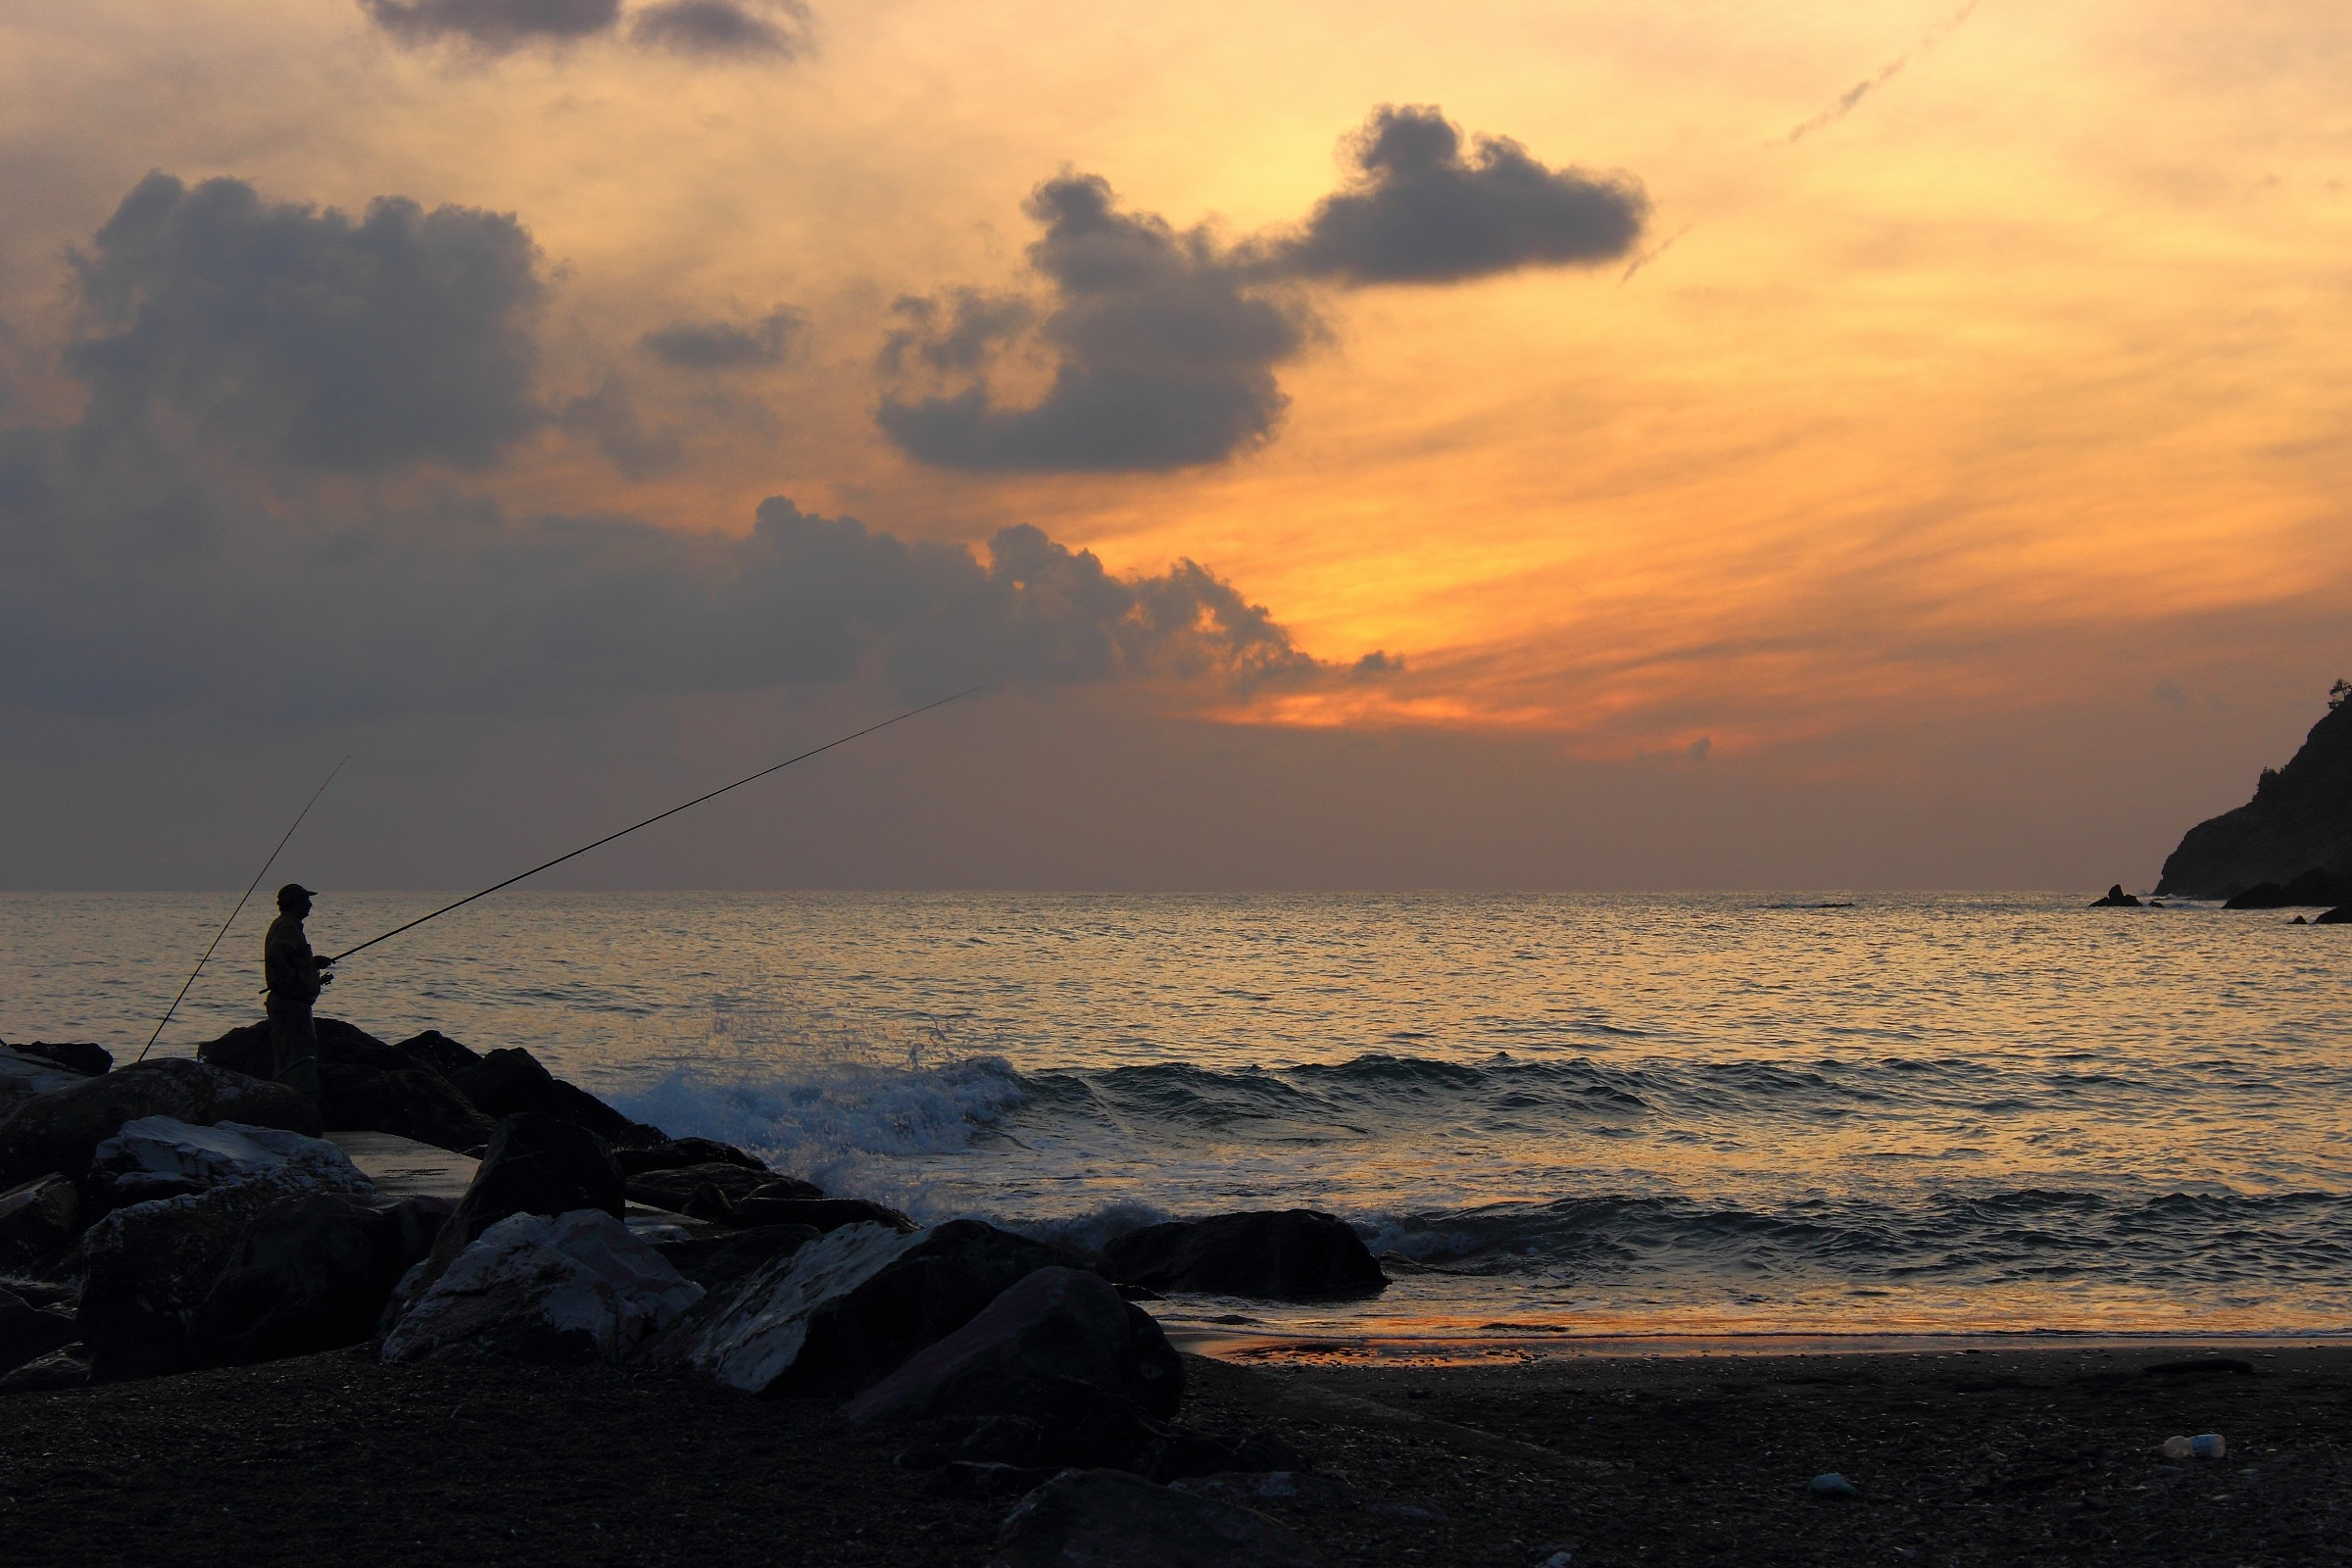 Fishing at sunset in Levanto...